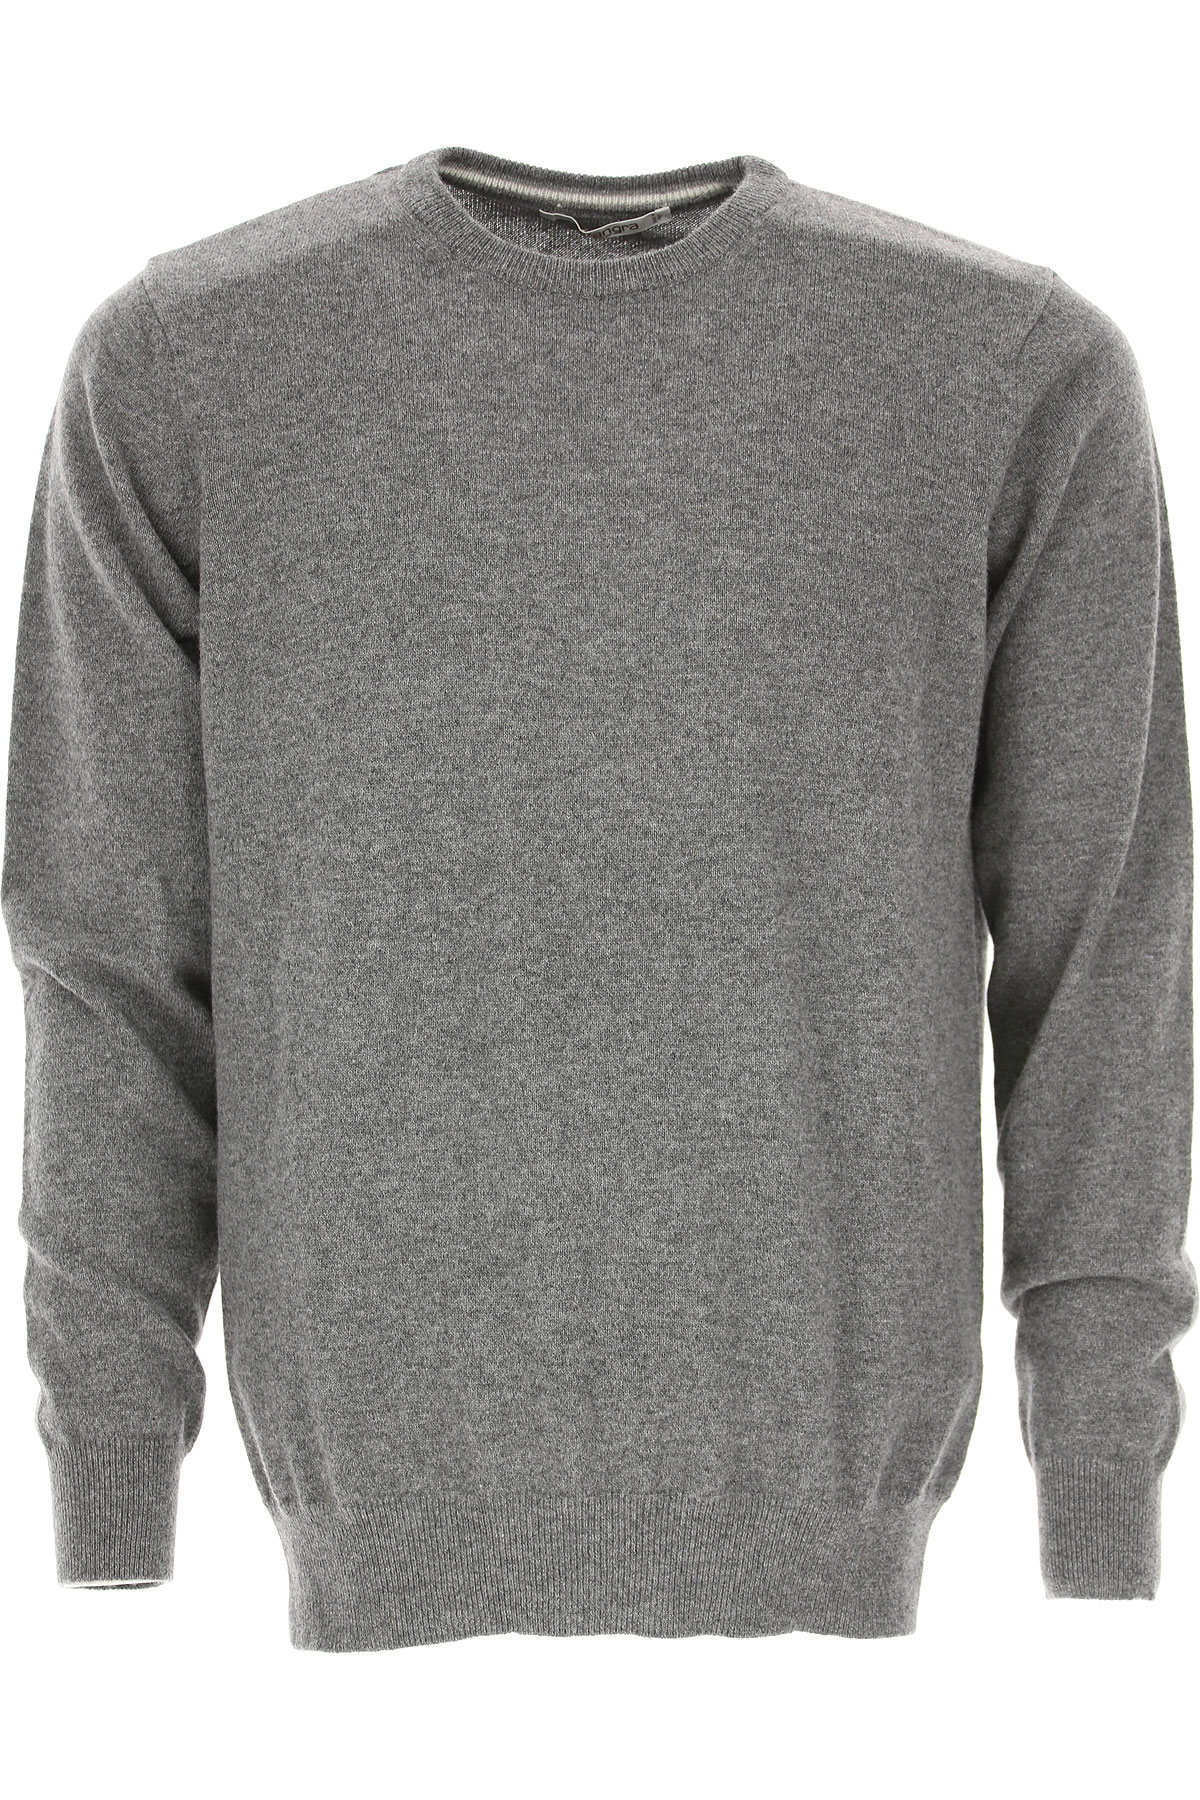 Image of Kangra Sweater for Men Jumper, Grey, Cashmere, 2017, XXXL